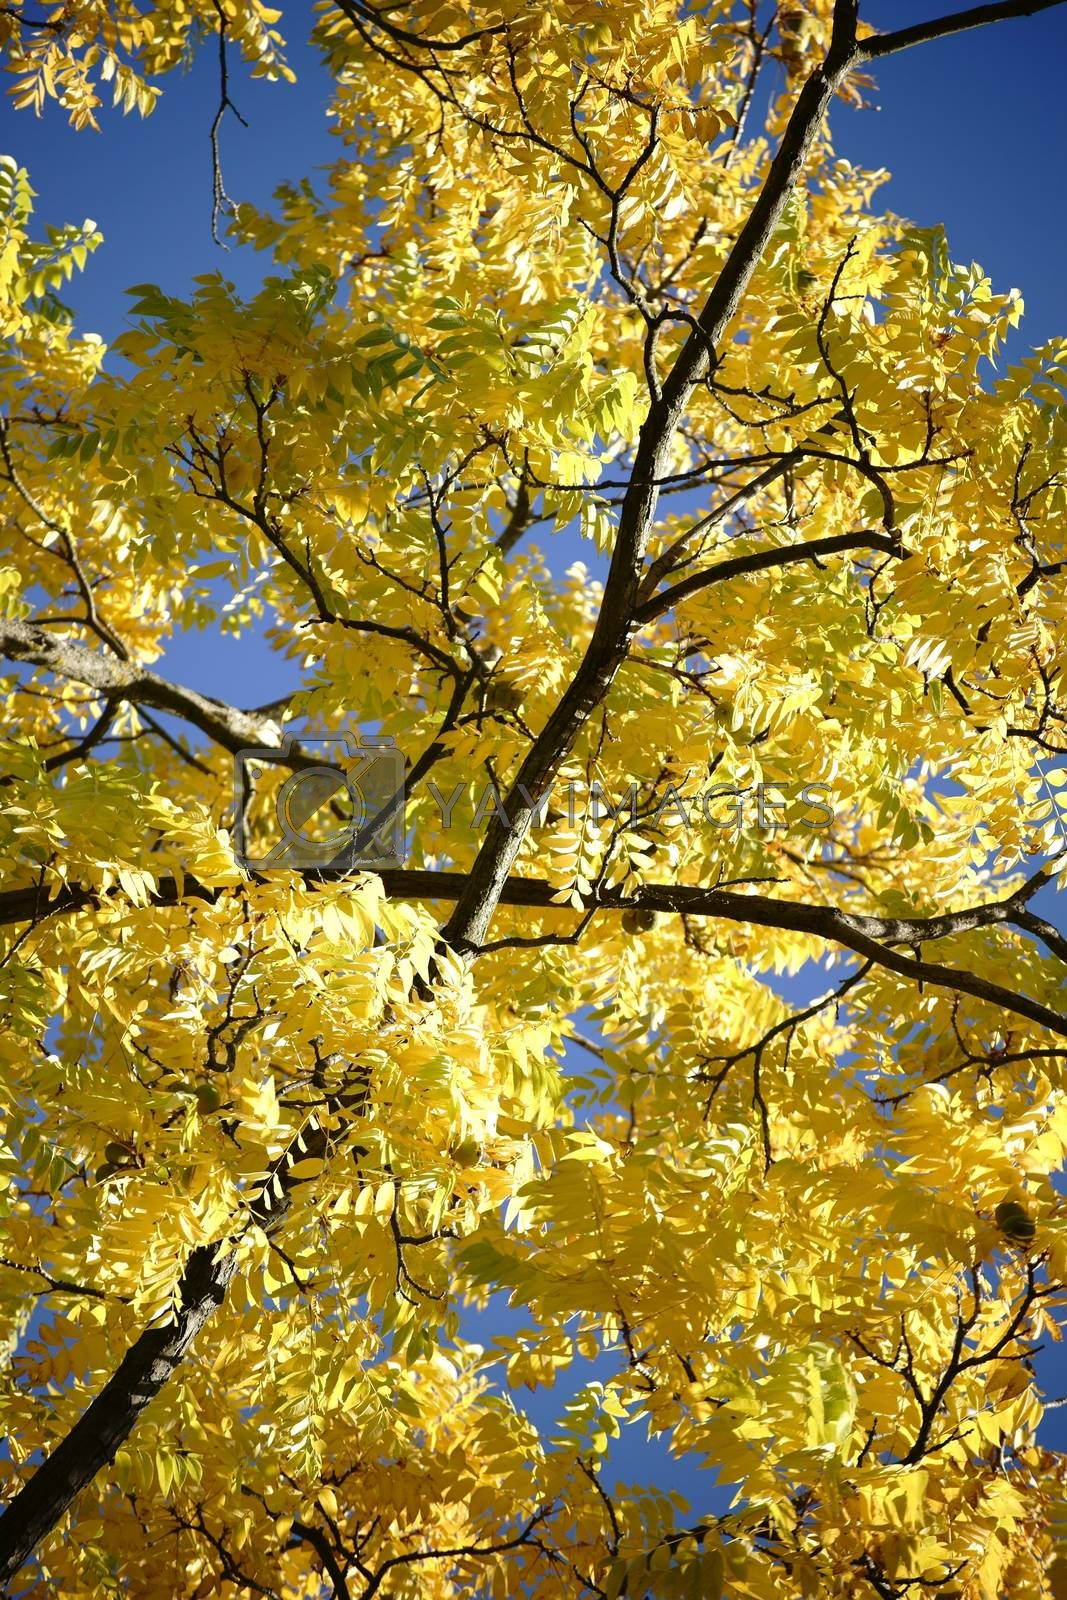 The canopy and the canopy of a black walnut tree in autumn, Juglans nigra.